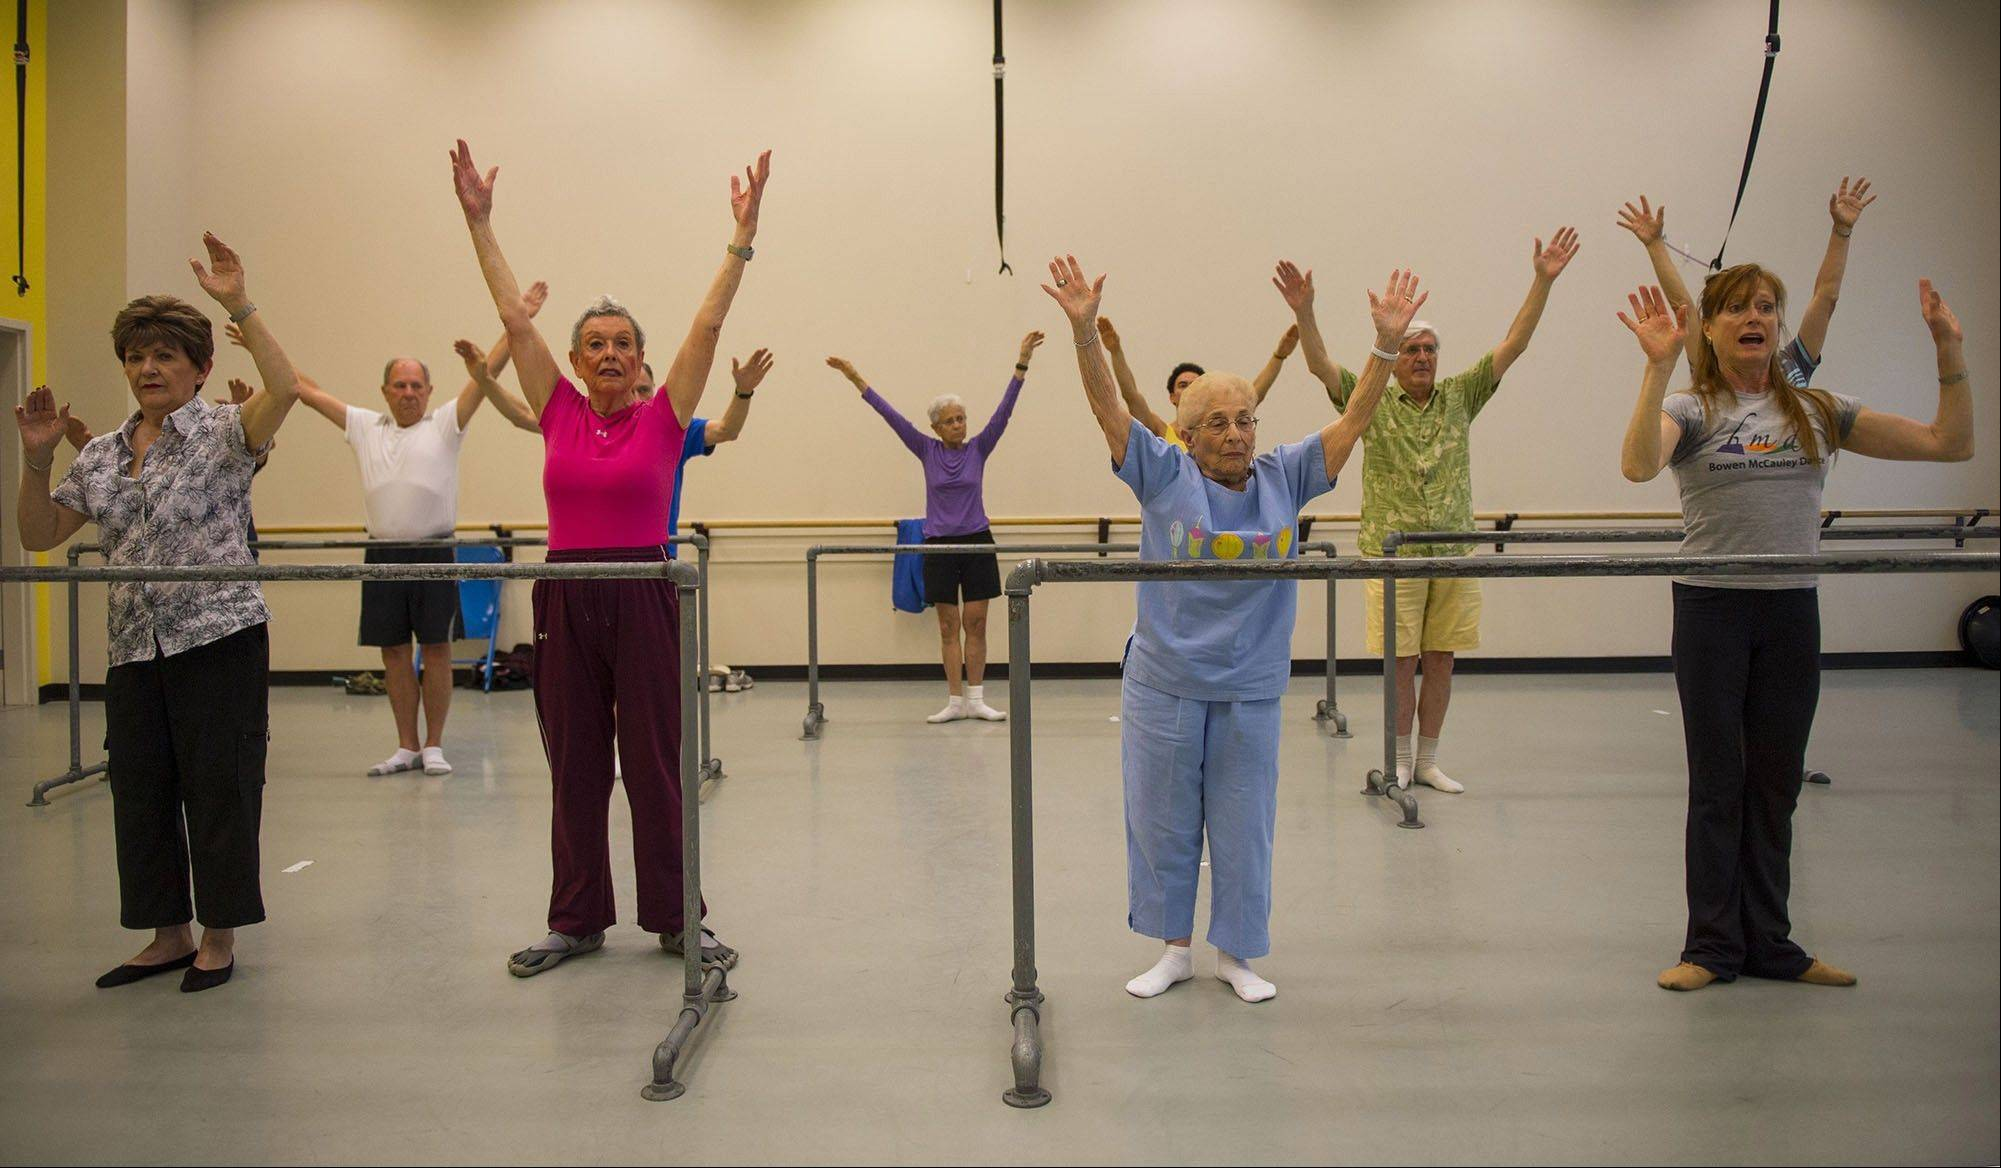 Dance instructor Lucy Bowen McCauley, right, leads her group of seniors in a variety of dance exercises during the Dance for Parkinson's Disease class at the Maryland Youth Ballet in Silver Spring, Md.